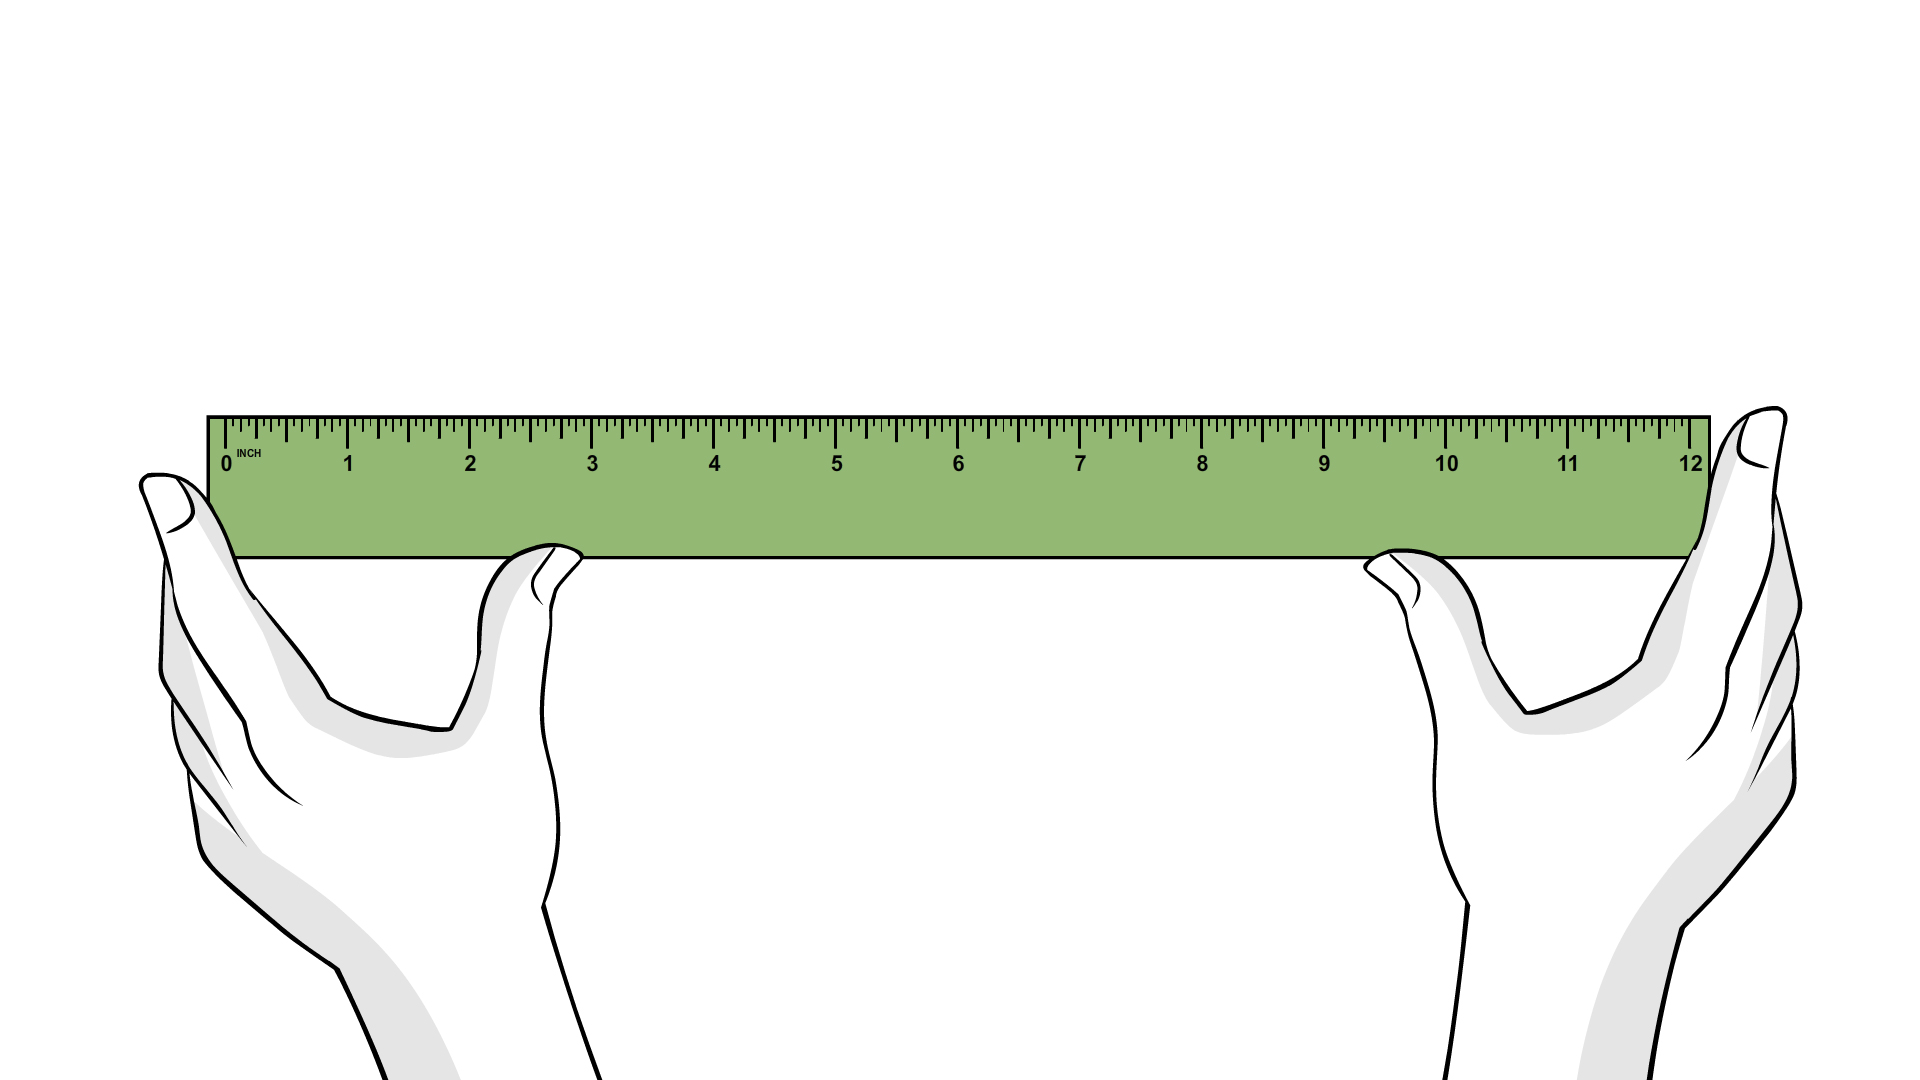 How To Read A Ruler 10 Steps With Pictures